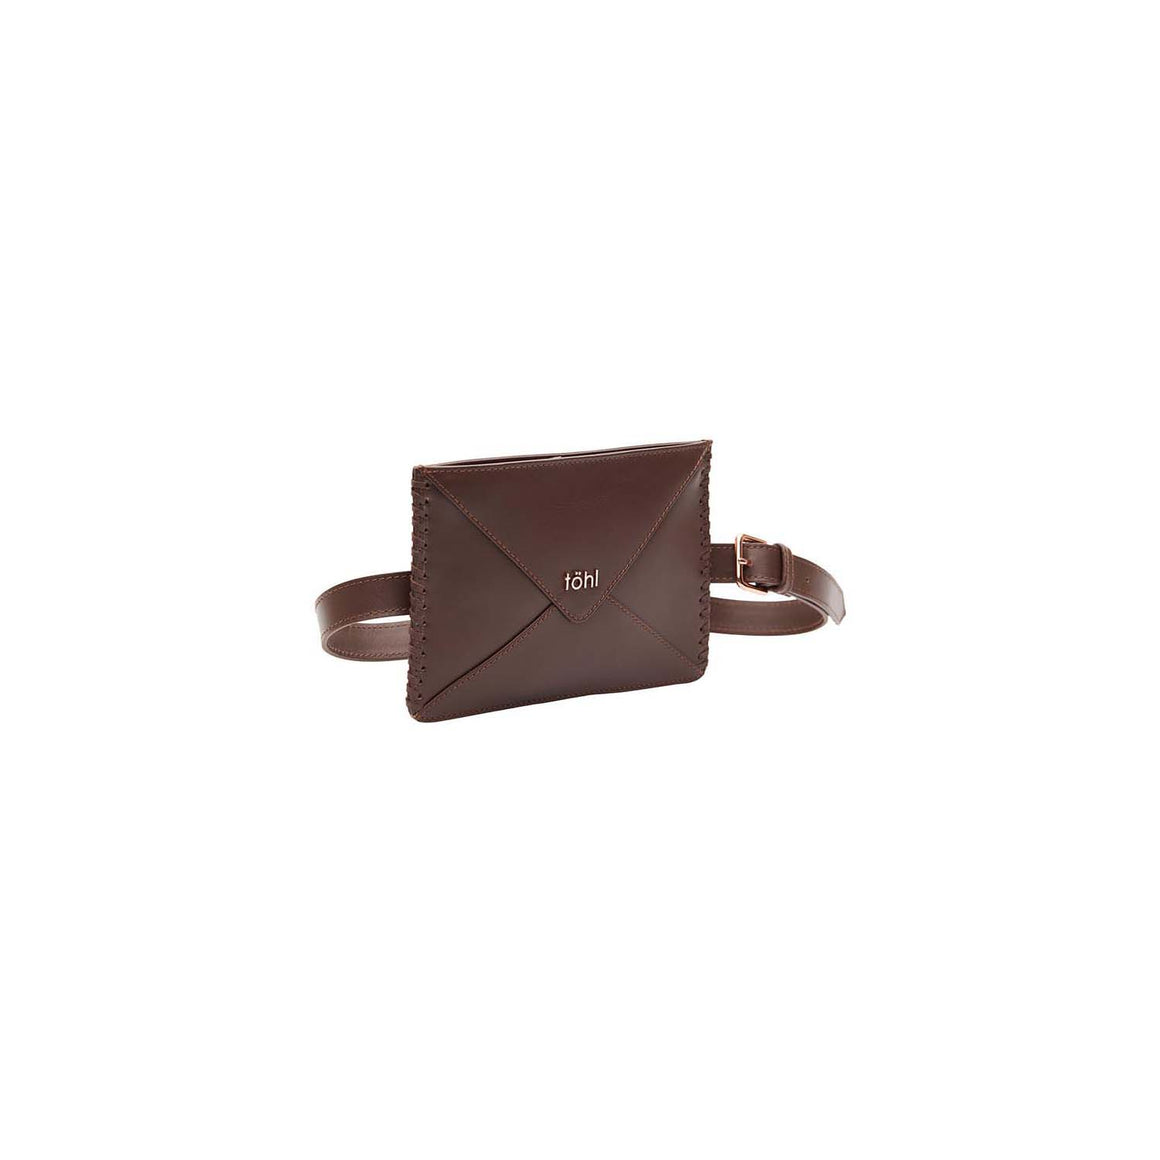 WP0002 - TOHL JUNIPER WOMEN'S WAIST POUCH - CHOCO